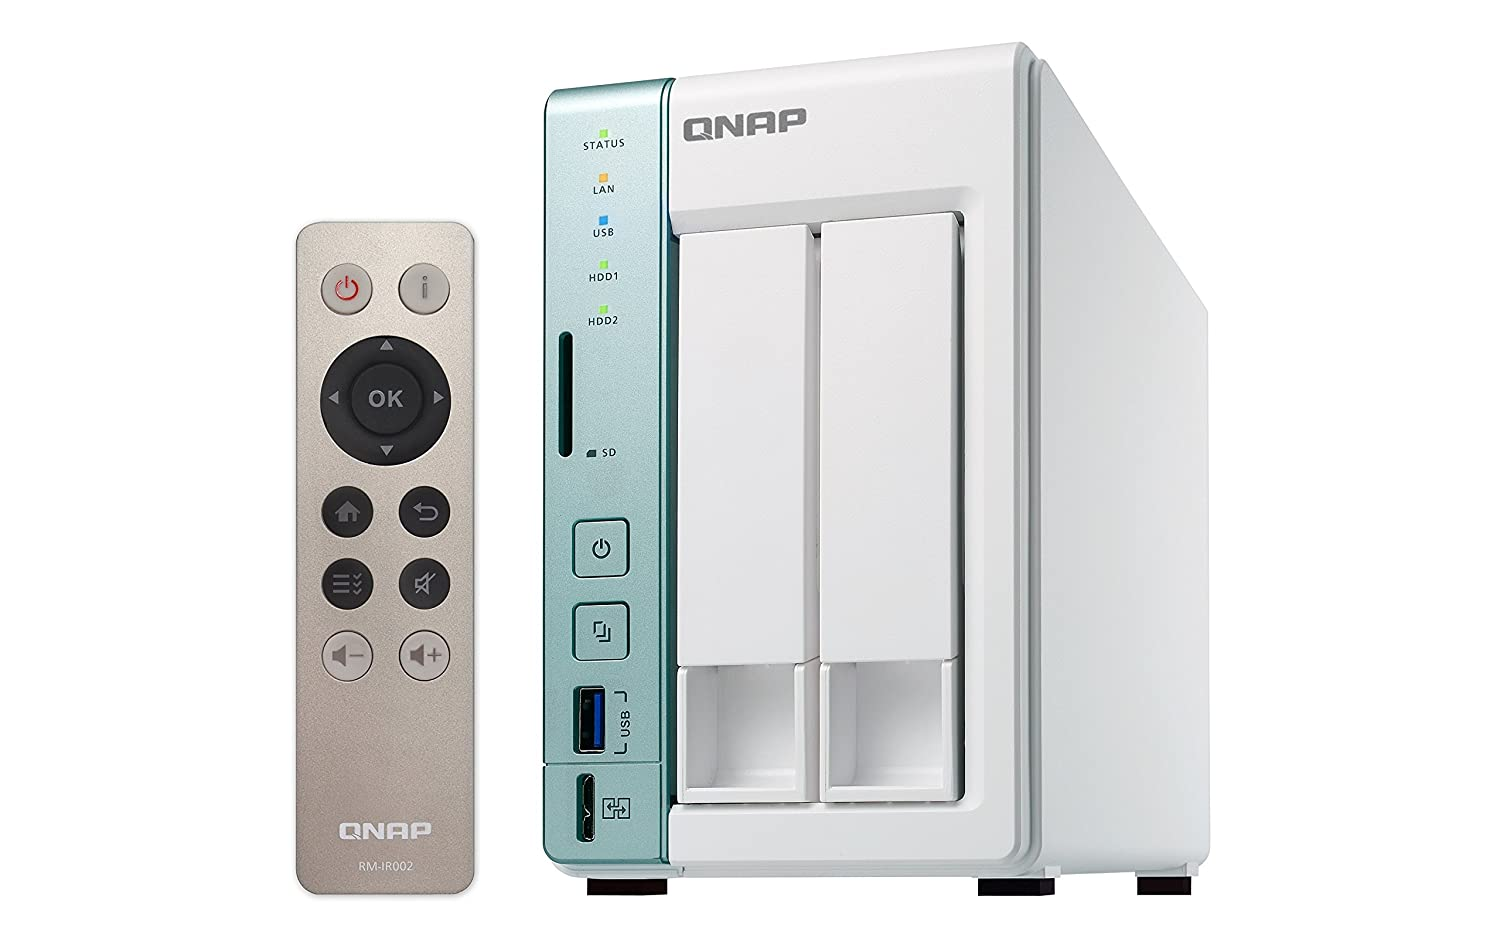 TALLA 2GB RAM. QNAP Turbo TS-251A - Dispositivo de Almacenamiento en Red NAS (Intel Celeron, 2 GB RAM, USB 3.0, SATA II/III, Gigabit), Blanco